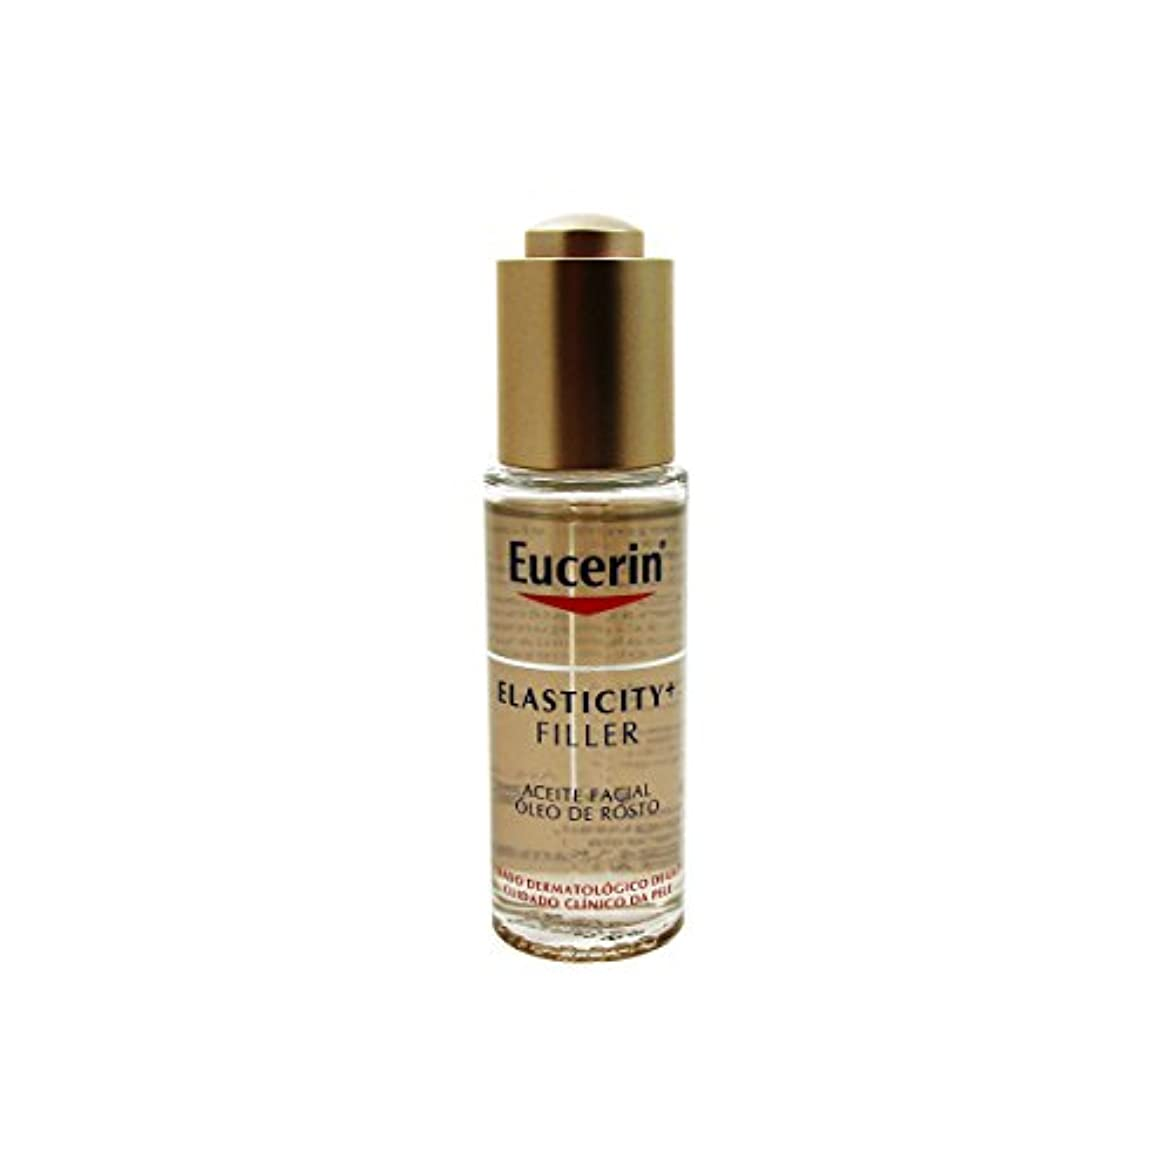 Eucerin Elasticity Filler Facial Oil 30ml [並行輸入品]